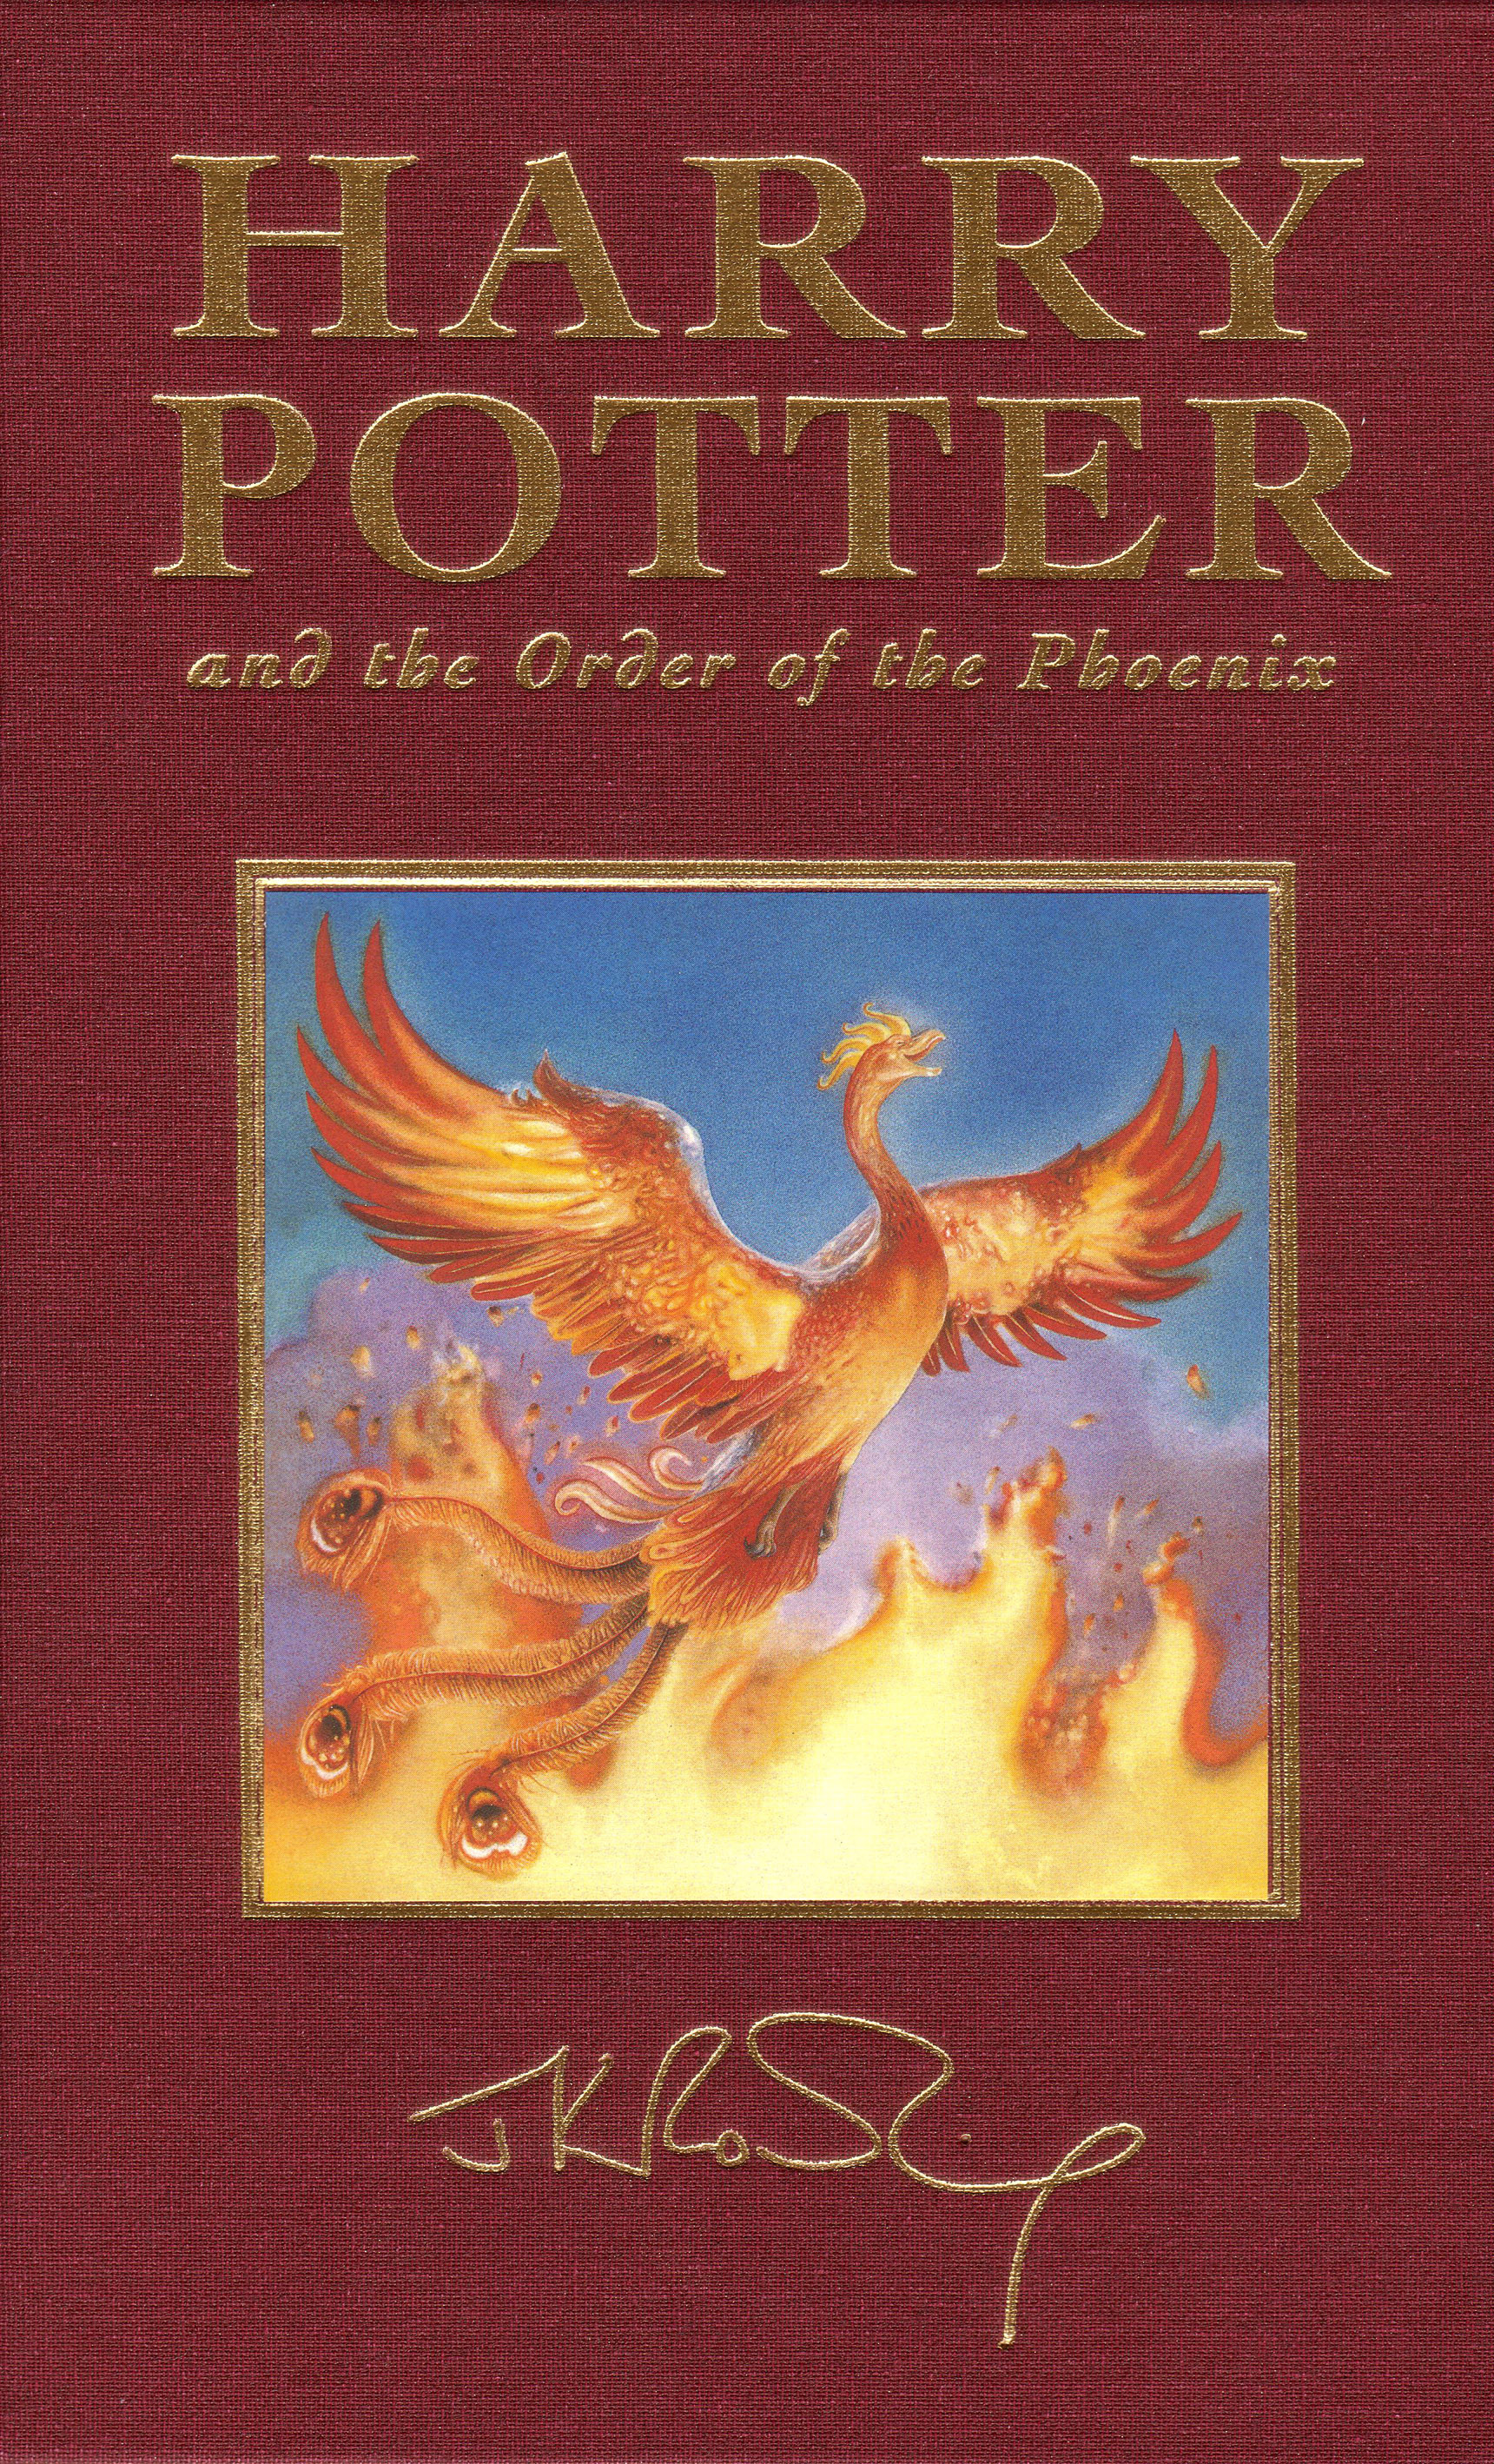 Harry Potter & the Order of the Phoenix Special Edition